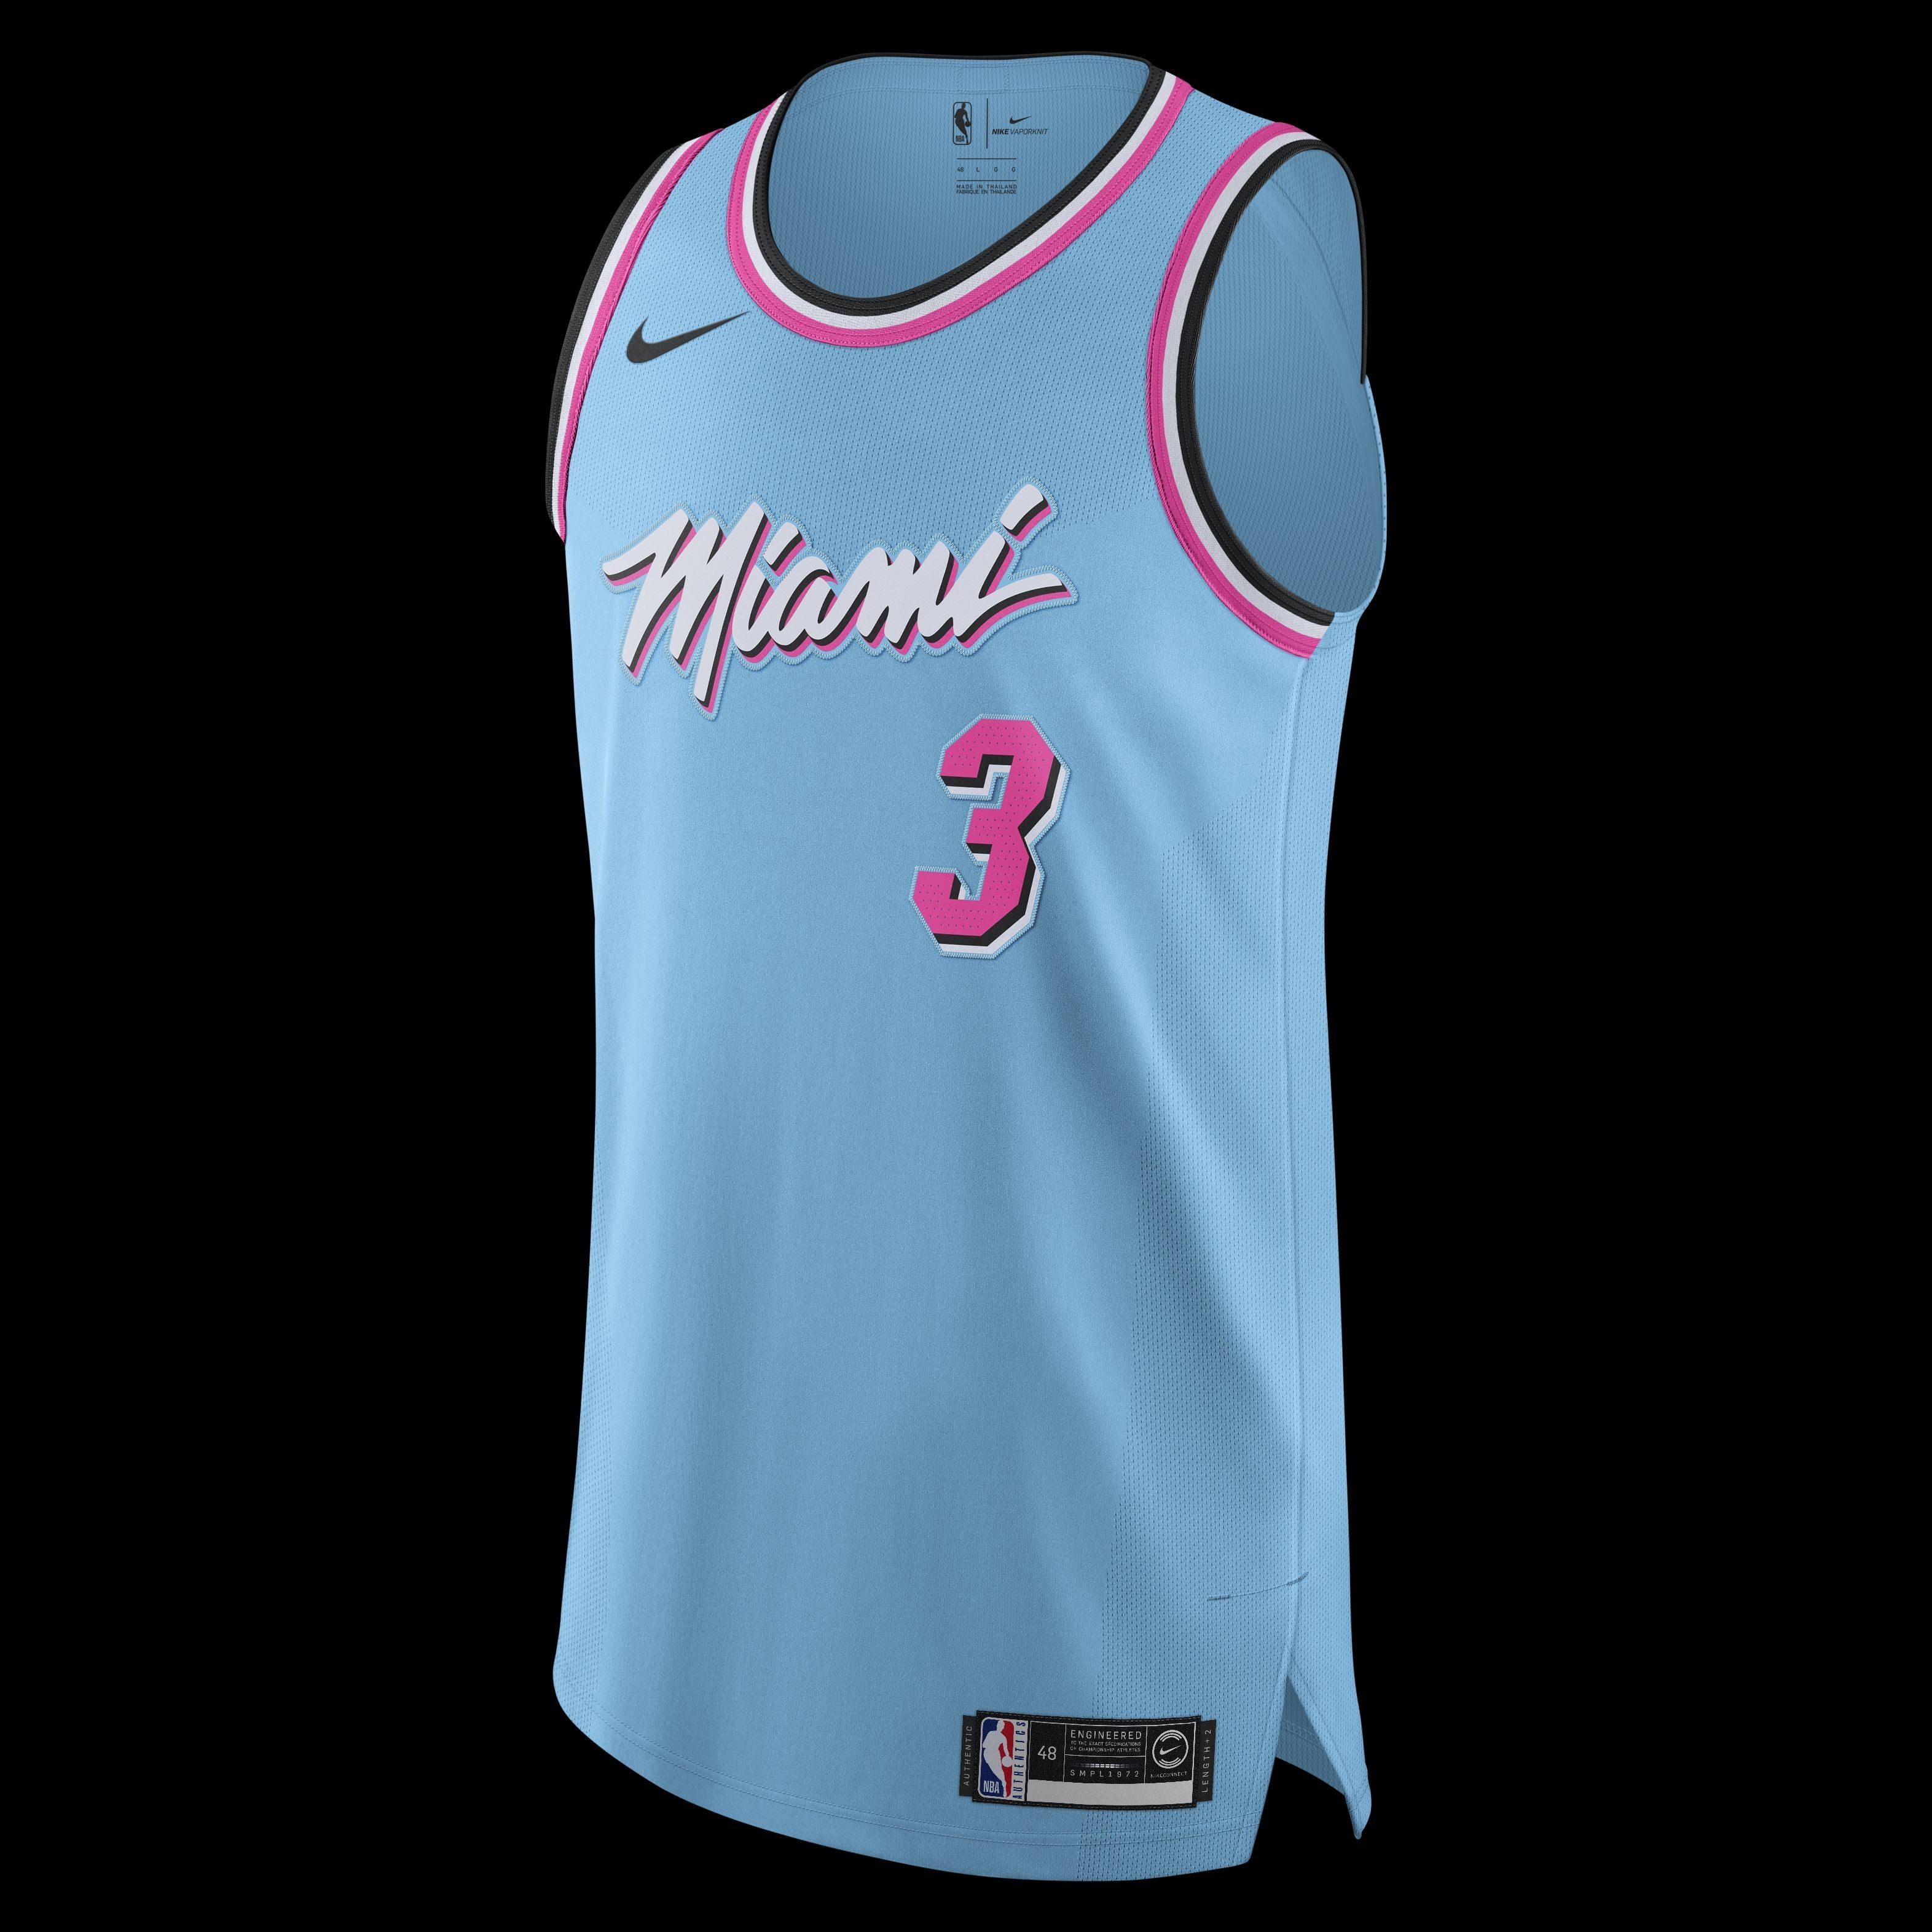 Get your Miami Heat City Edition Jerseys now